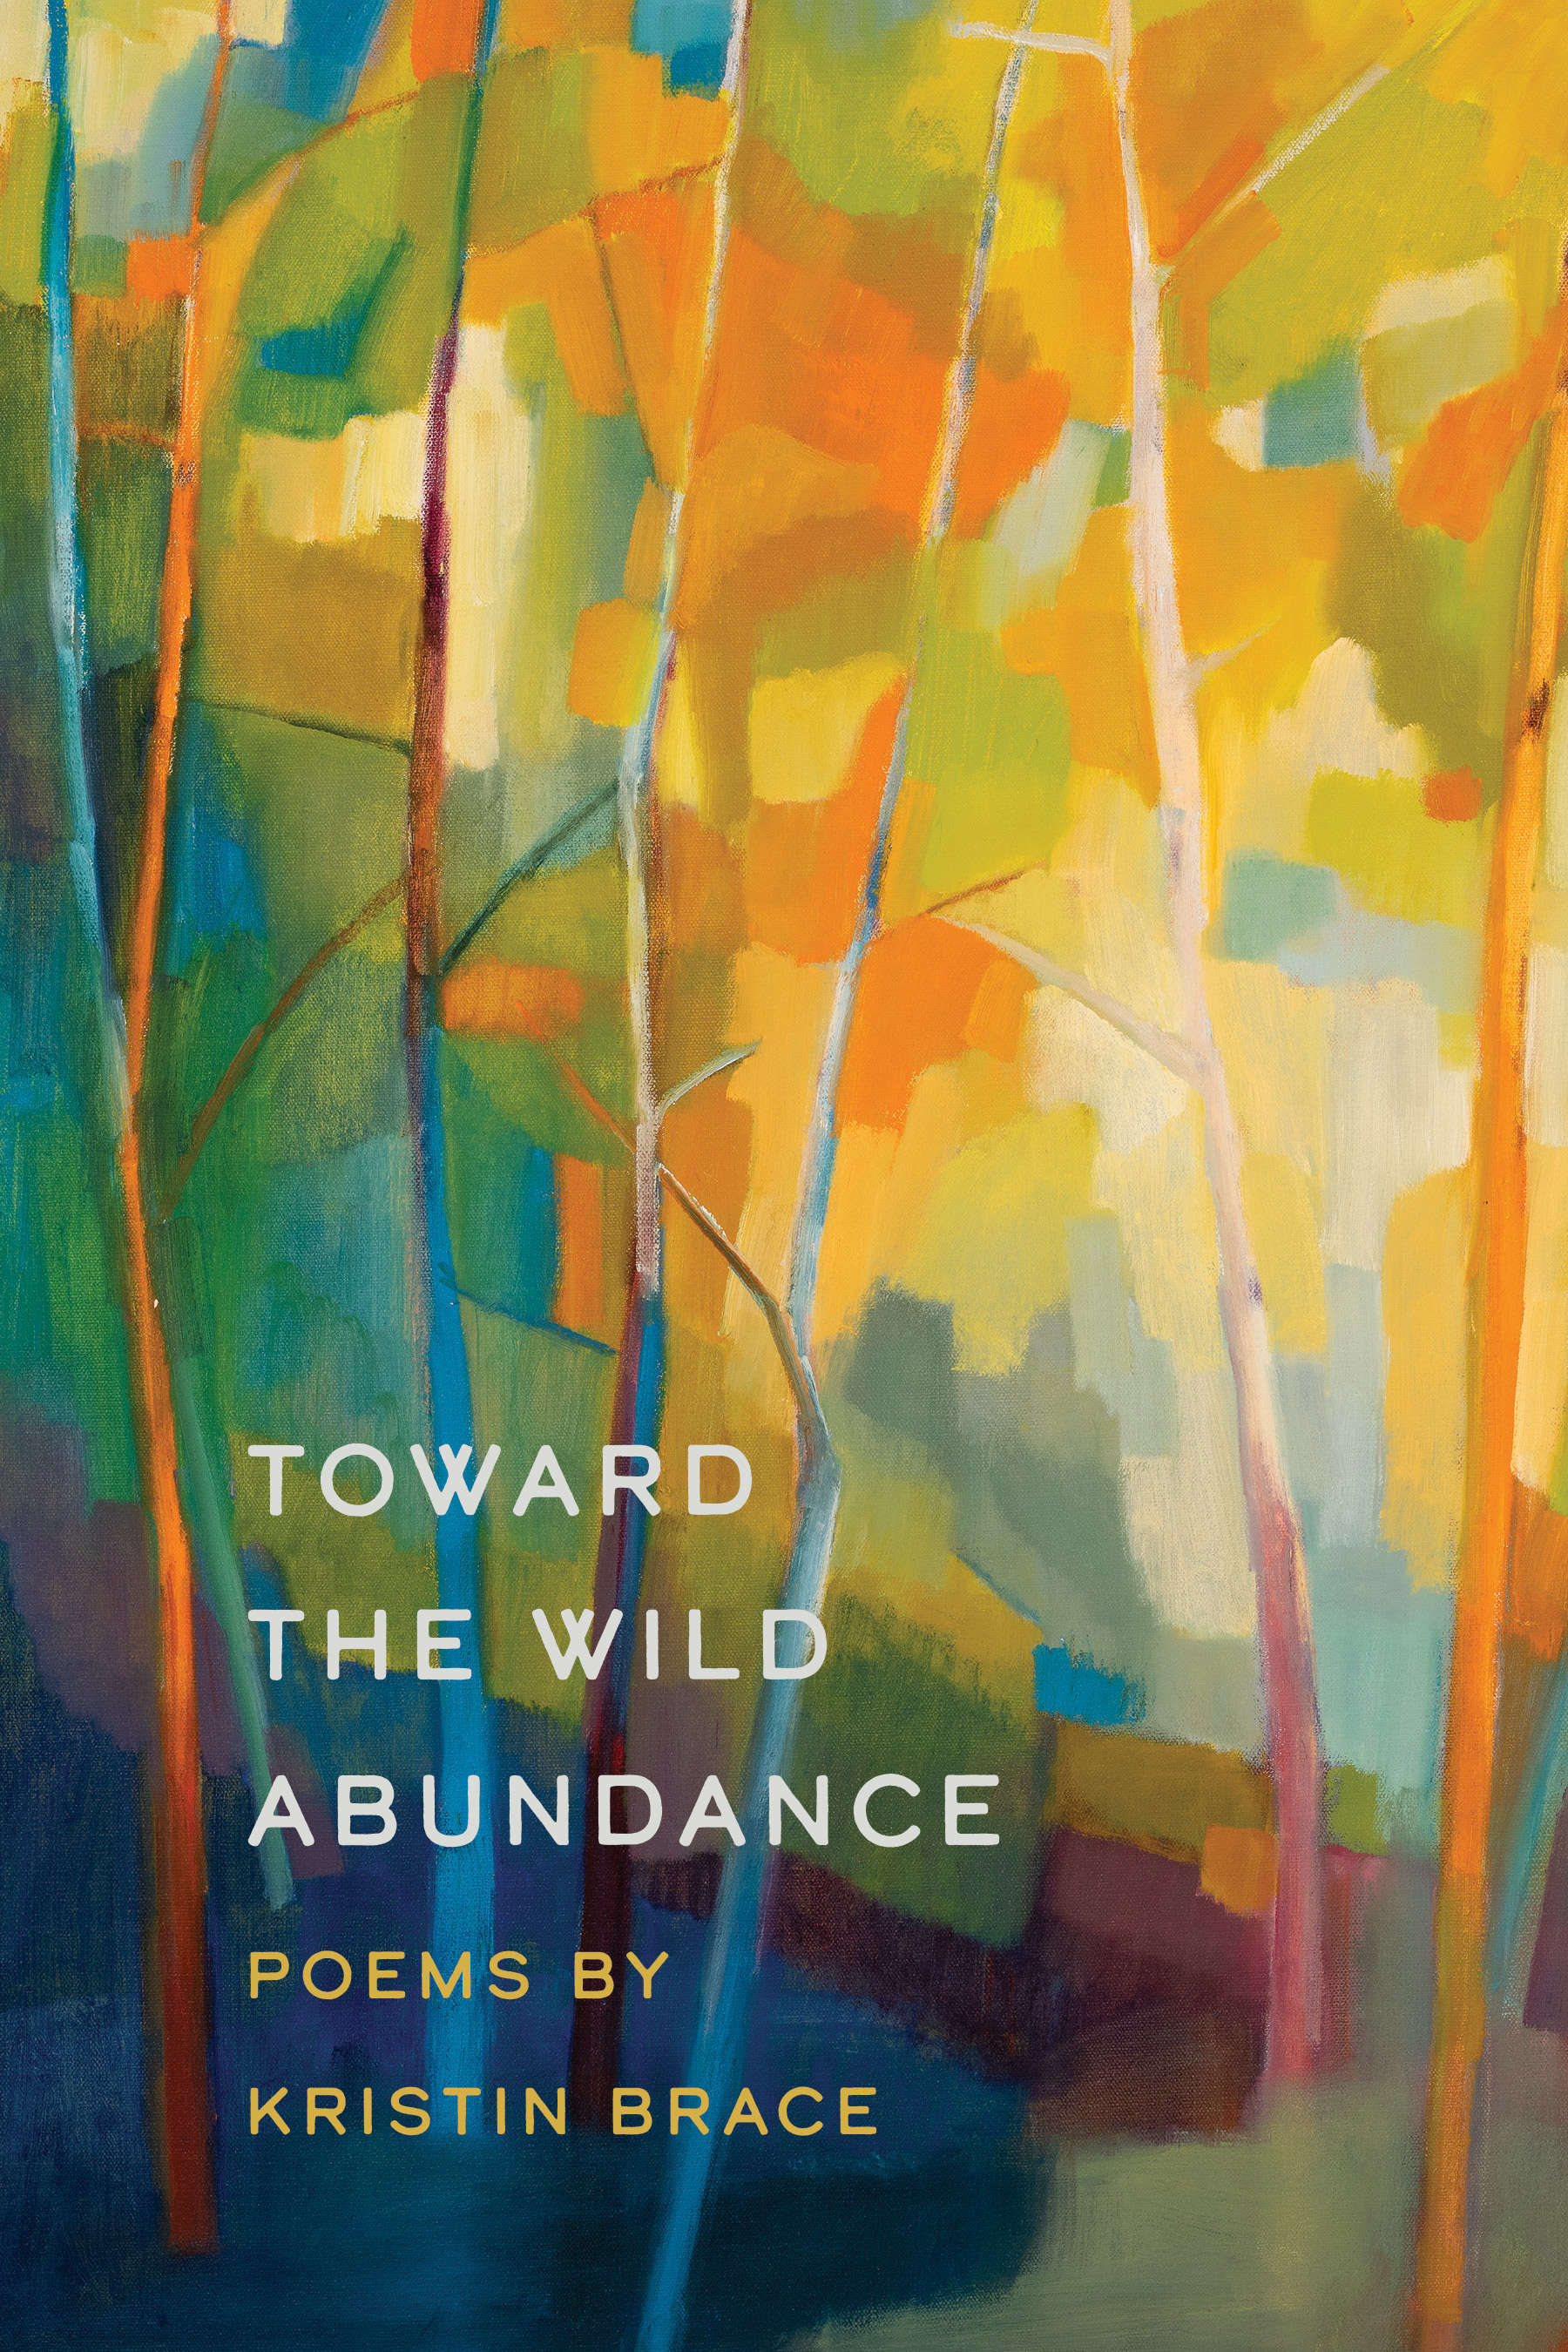 Toward the Wild Abundance - Kristin's full-length poetry collection Toward the Wild Abundance was selected for the 2018 Wheelbarrow Books Poetry Prize.The collection is available now from Michigan State University Press.